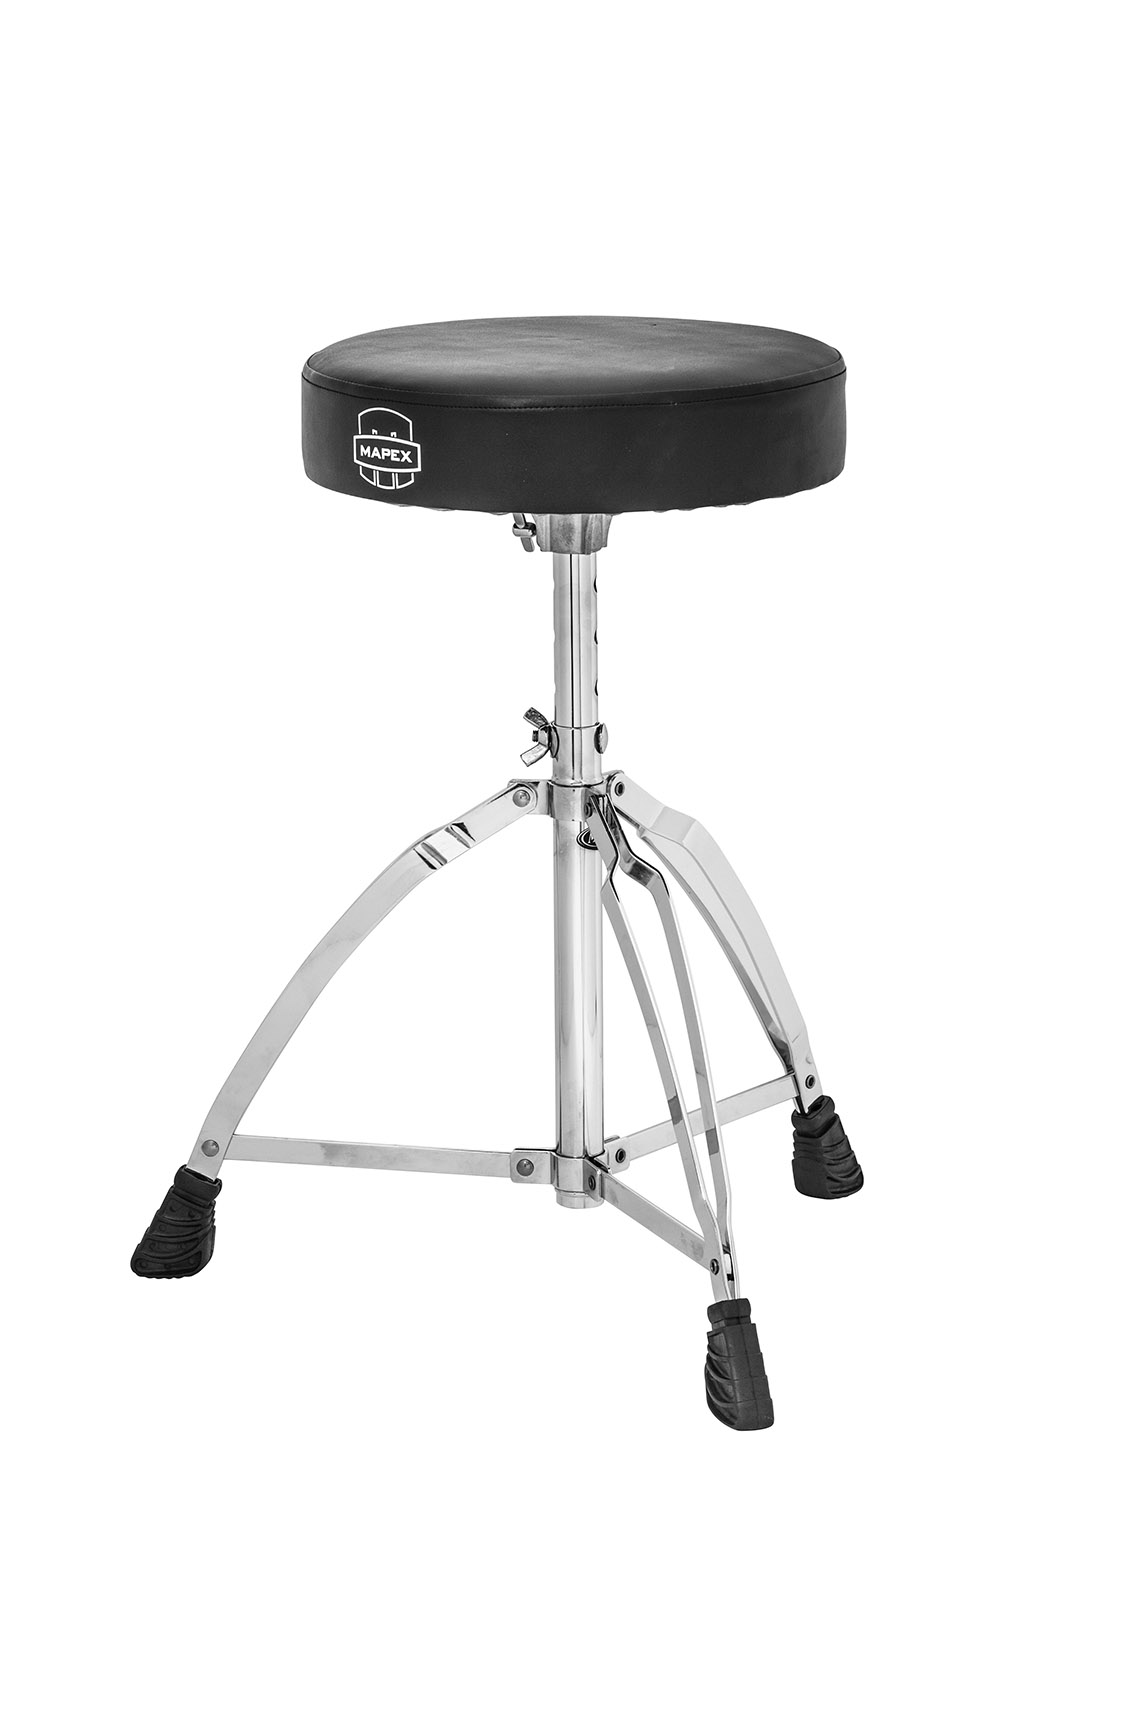 Round Top Lightweight Throne  sc 1 st  Mapex Drums & Mapex Drums - Thrones islam-shia.org